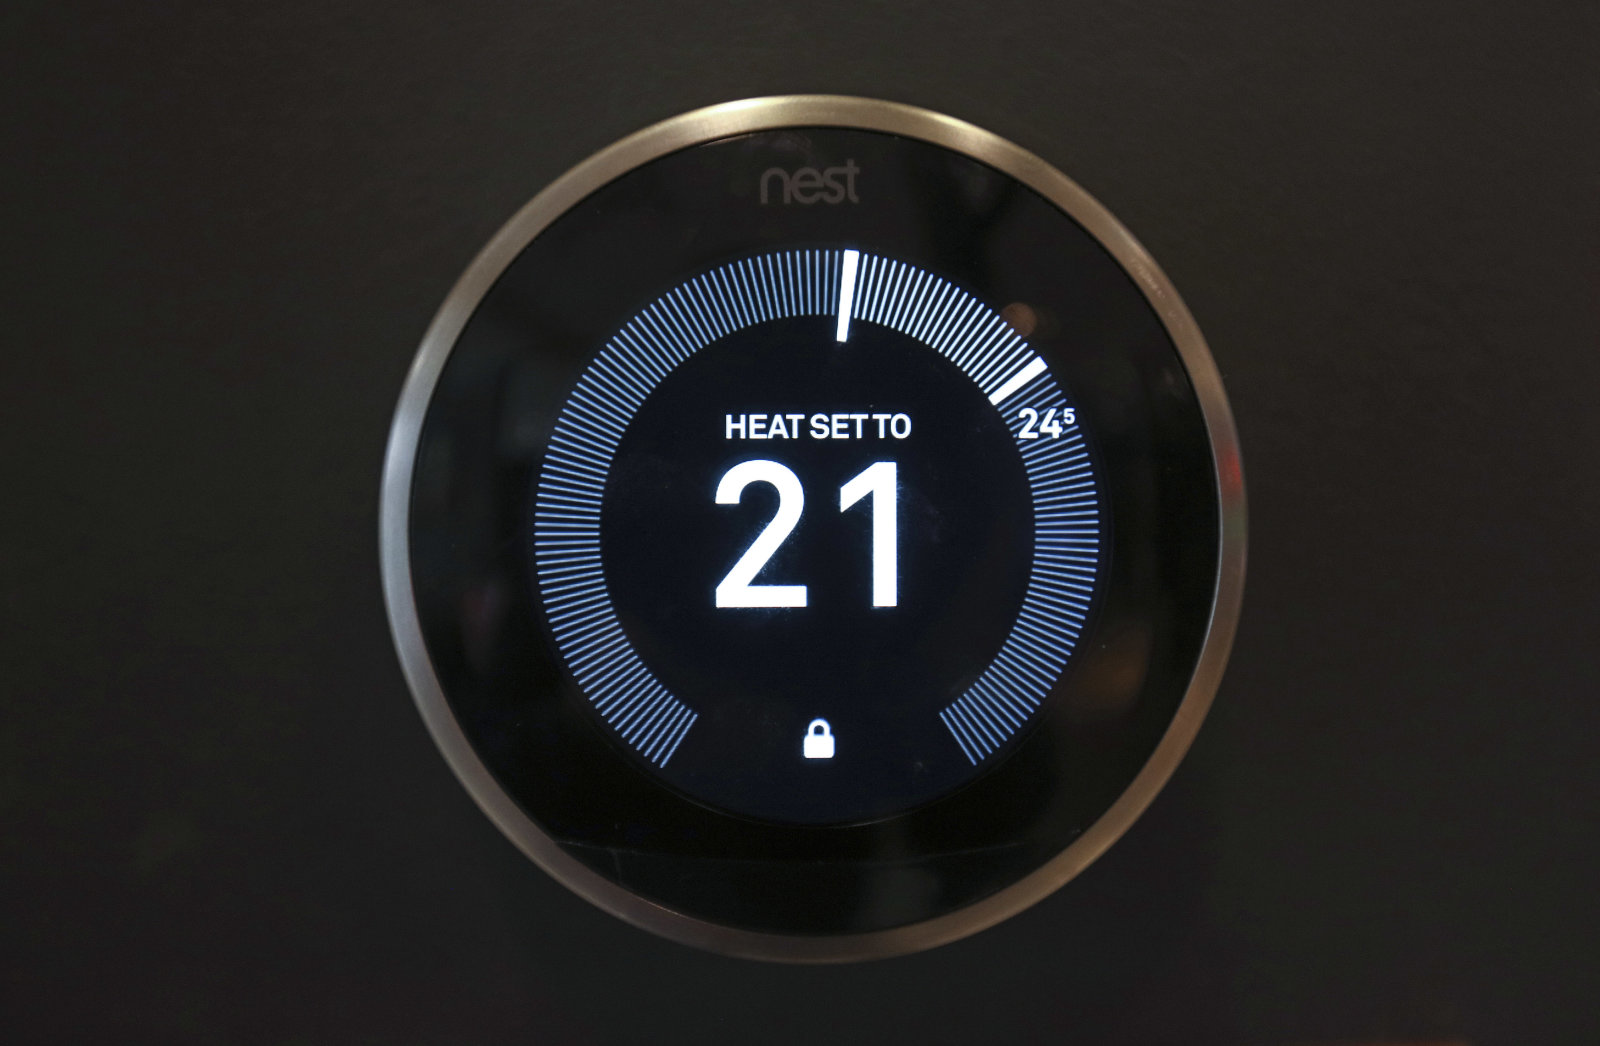 A Nest Labs Inc. digital wireless controlled thermostat sits on display in the Smart Home section of a John Lewis Plc department store in London, U.K., on Friday, April 8, 2016. The increasing integration of connected devices into our lives, what is commonly referred to as the Internet of things or IoT, promises enormous benefits for consumers and businesses. Photographer: Chris Ratcliffe/Bloomberg via Getty Images